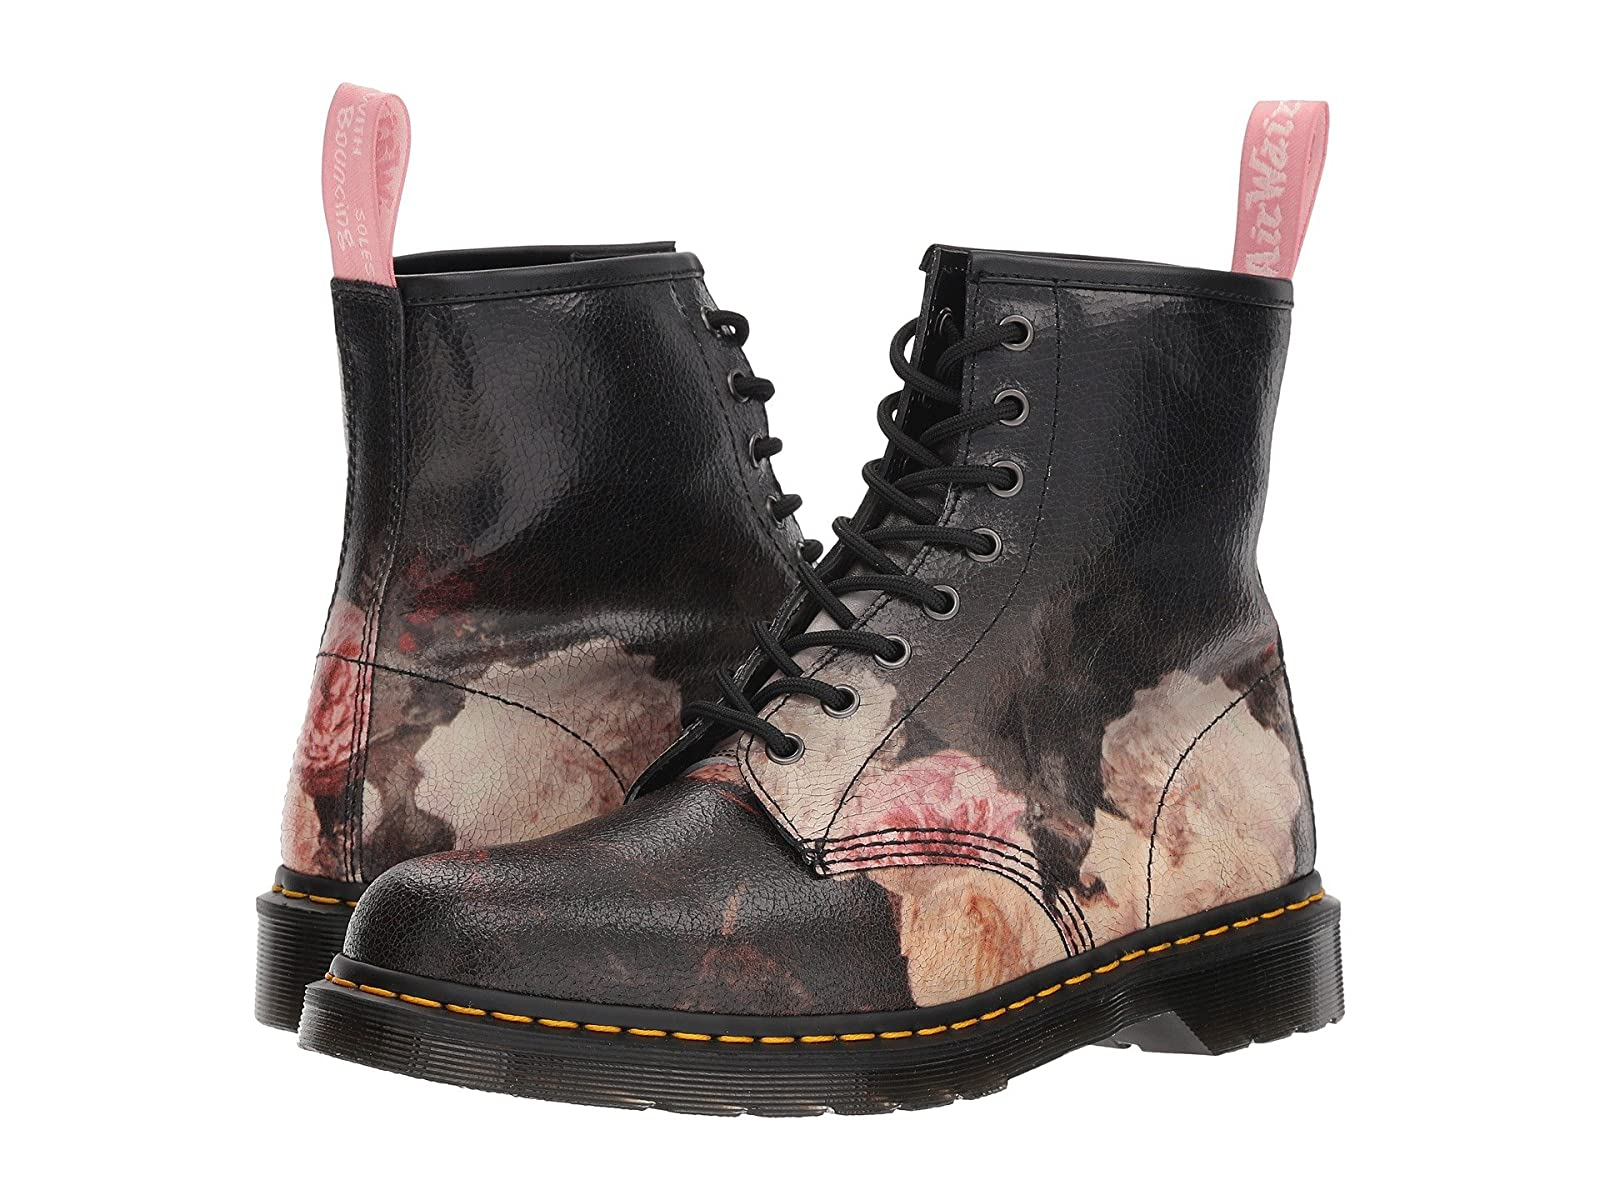 Dr. Martens Power, 1460 Power, Martens Corruption & Lies 2bf79c